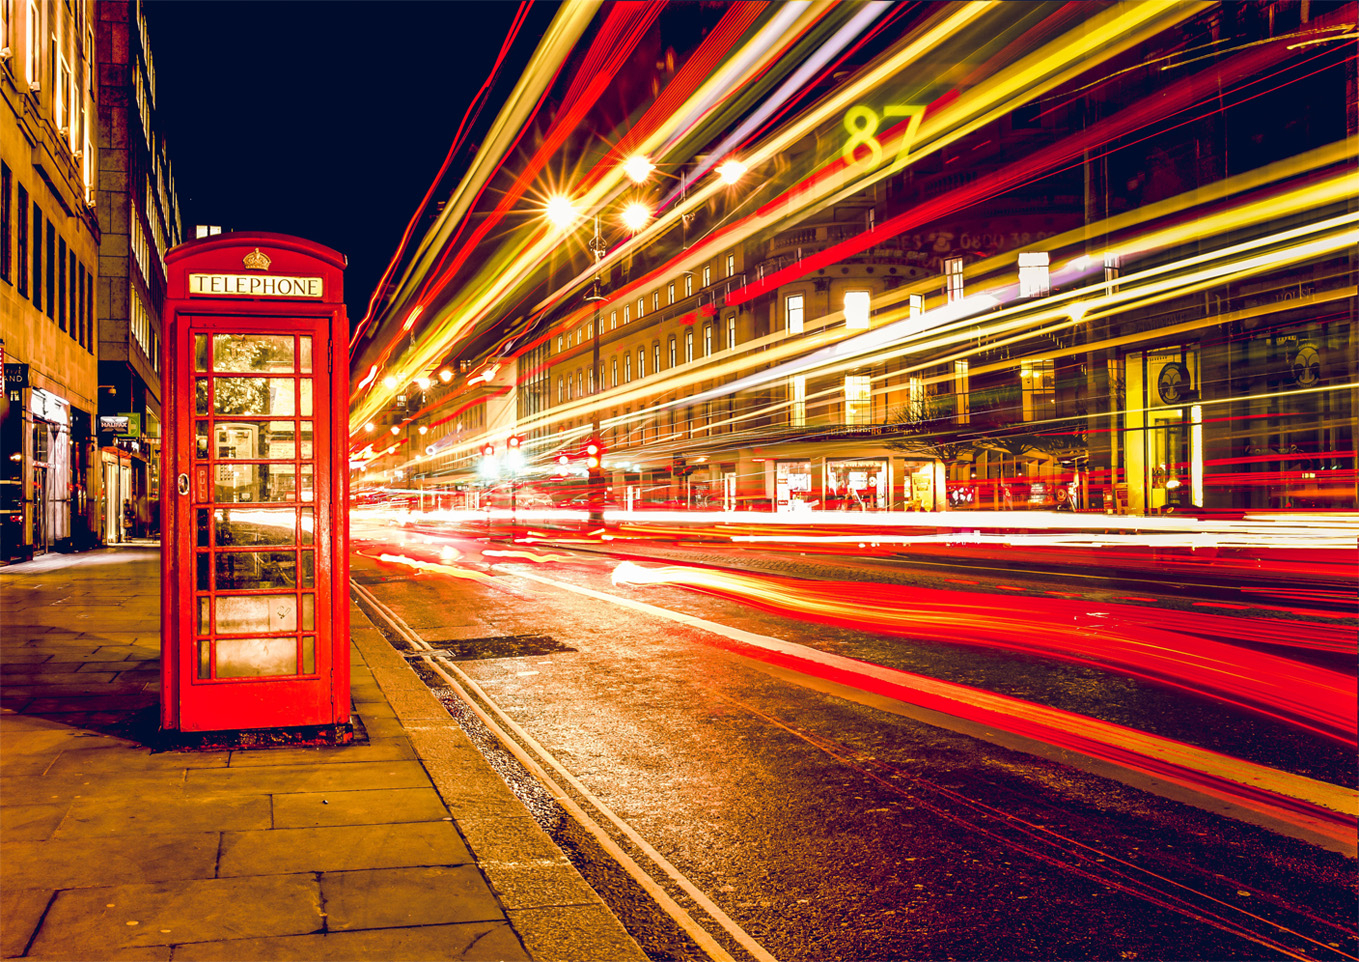 Admin Hacks: A picture of a London street. A phone box to the left and red, white and yellow lines to the right demonstrating fast moving traffic.